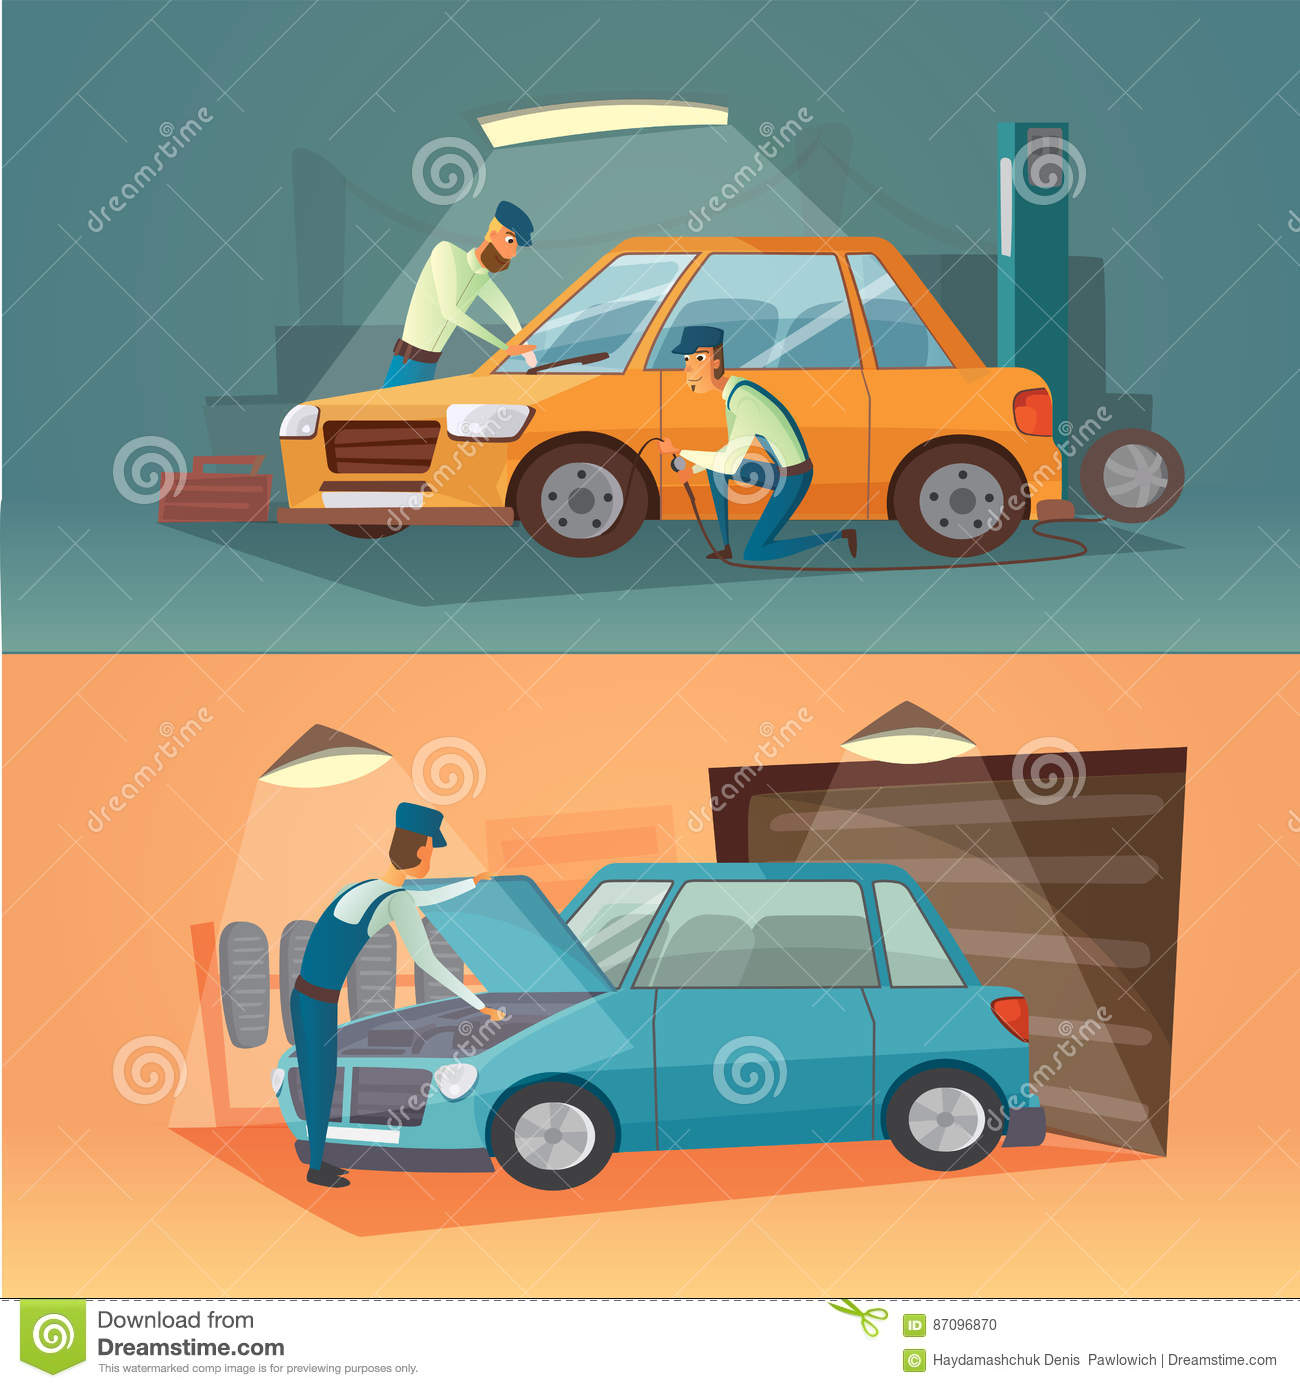 Colonial Auto Center >> Scenes Of Car Repair Vector Illustration. Workers In Service Tire And Auto Business. Cartoon ...